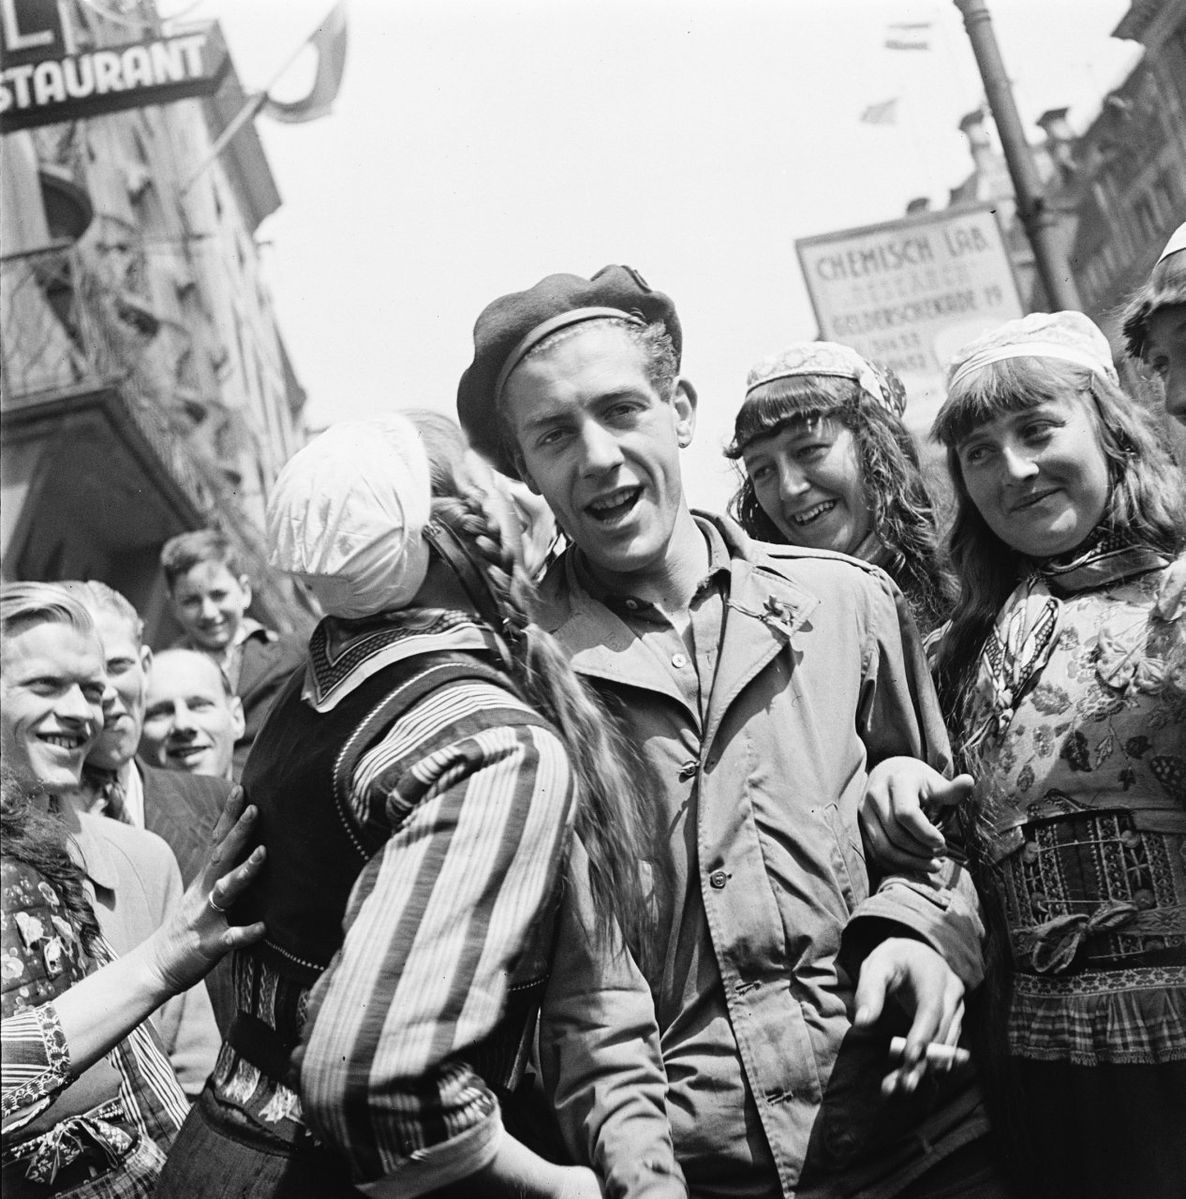 Young Canadian soldier flanked by Dutch women celebrating liberation.